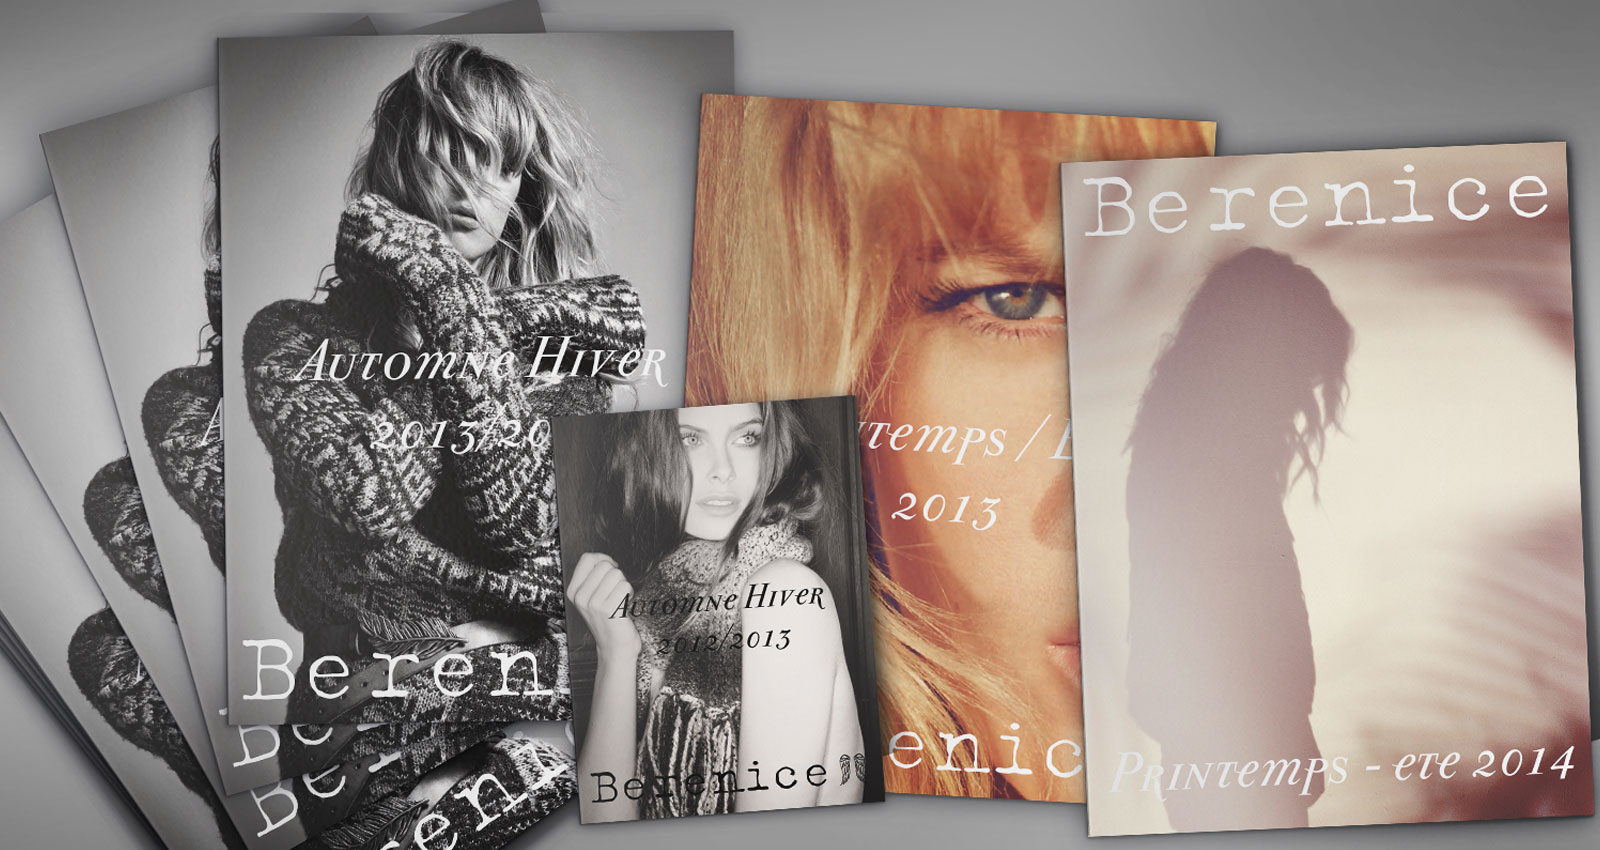 Catalogues for Bérénice fashion brand